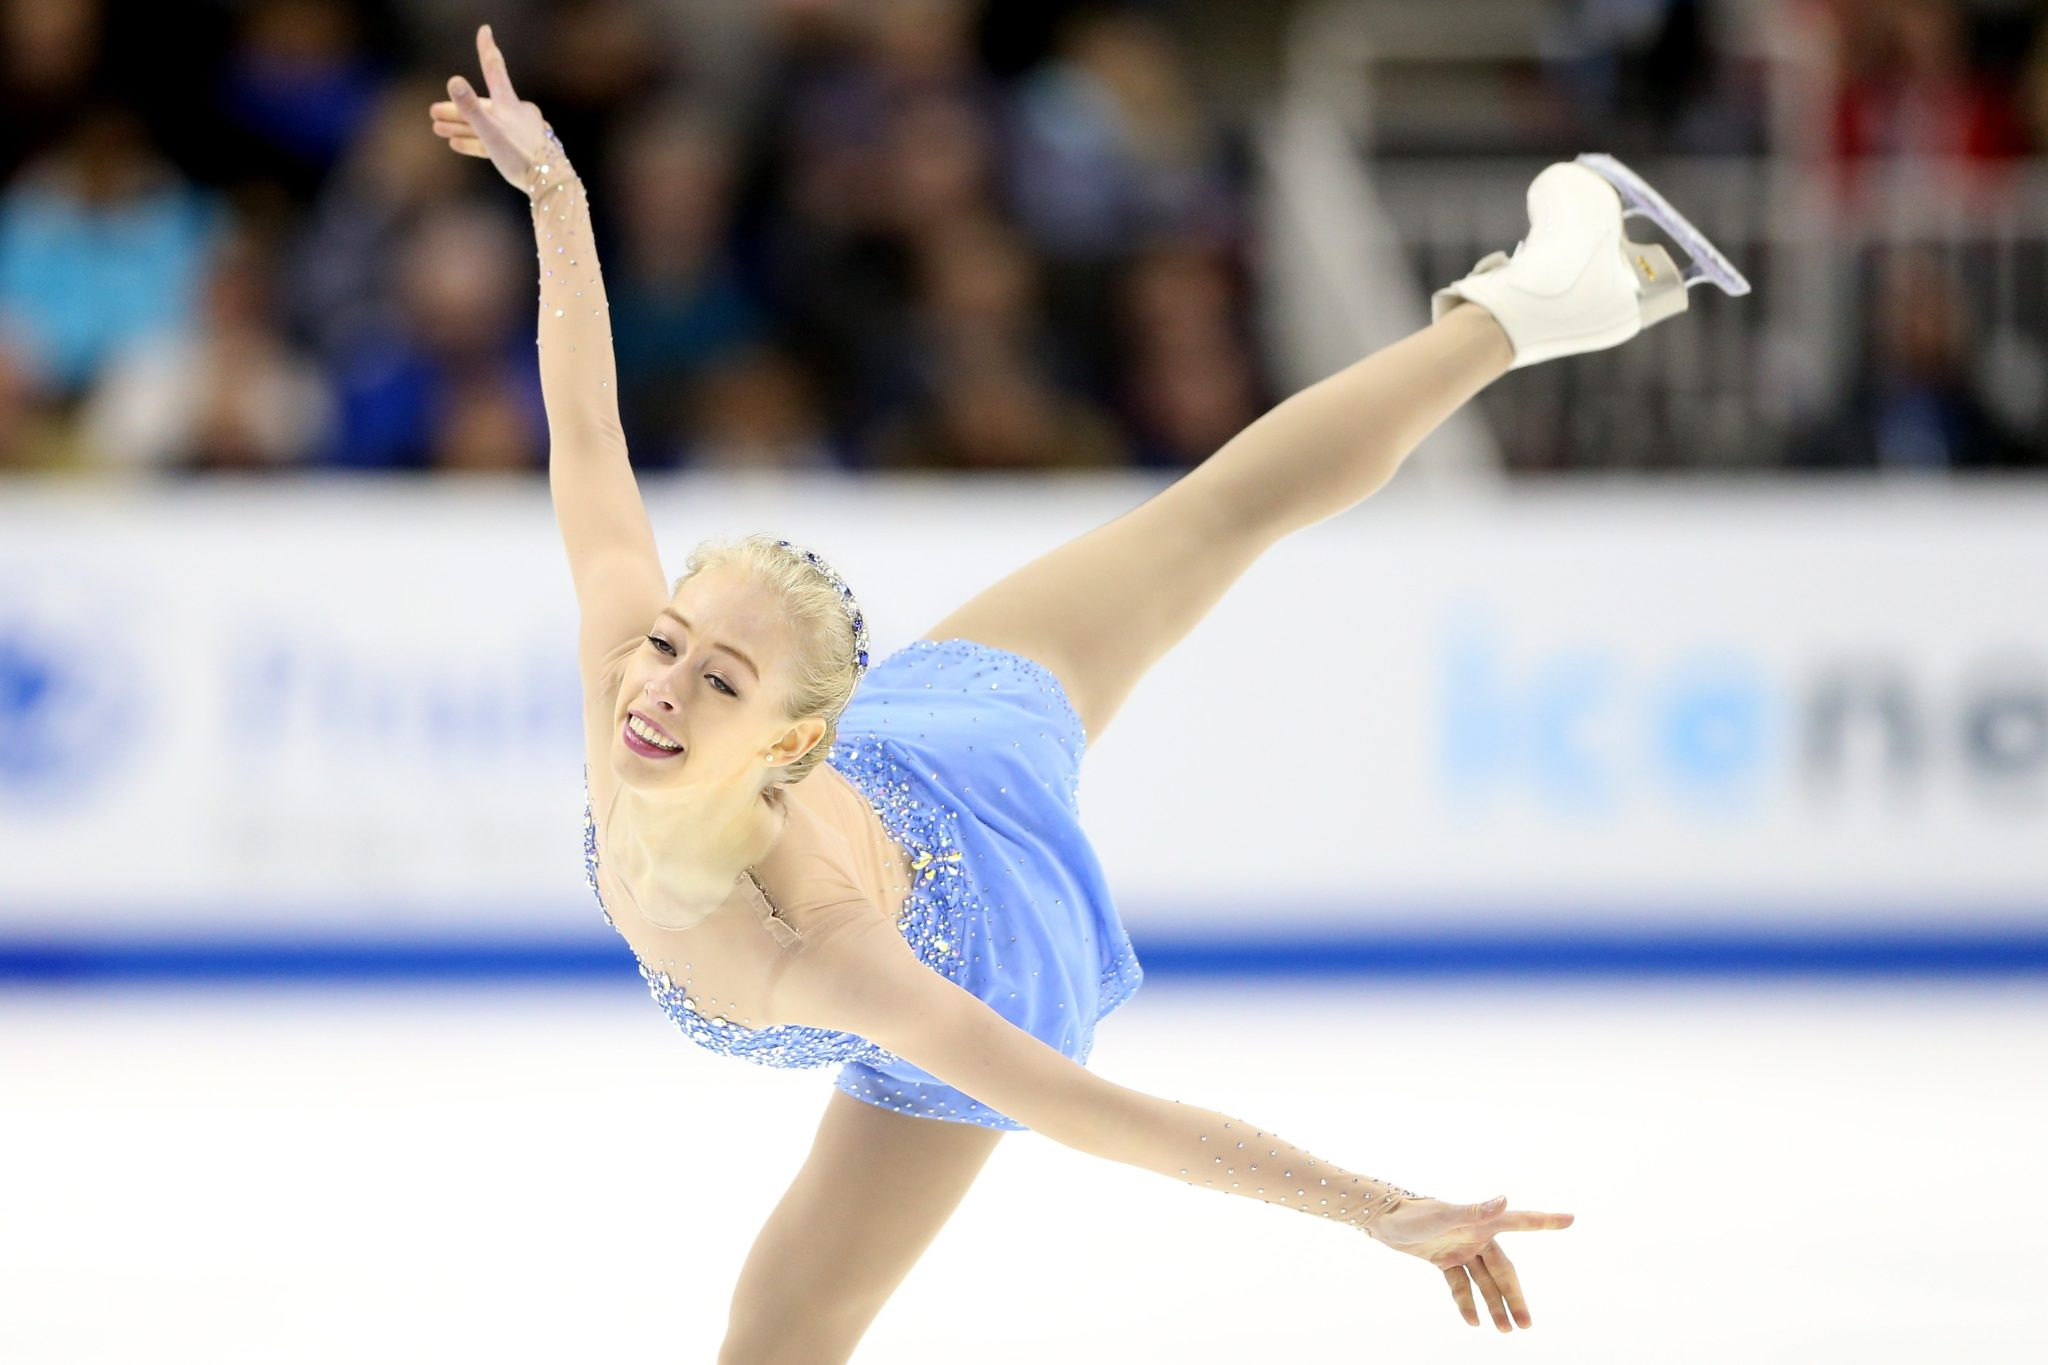 2018 Winter Olympics: U.S. Figure Skating Lineup Announced